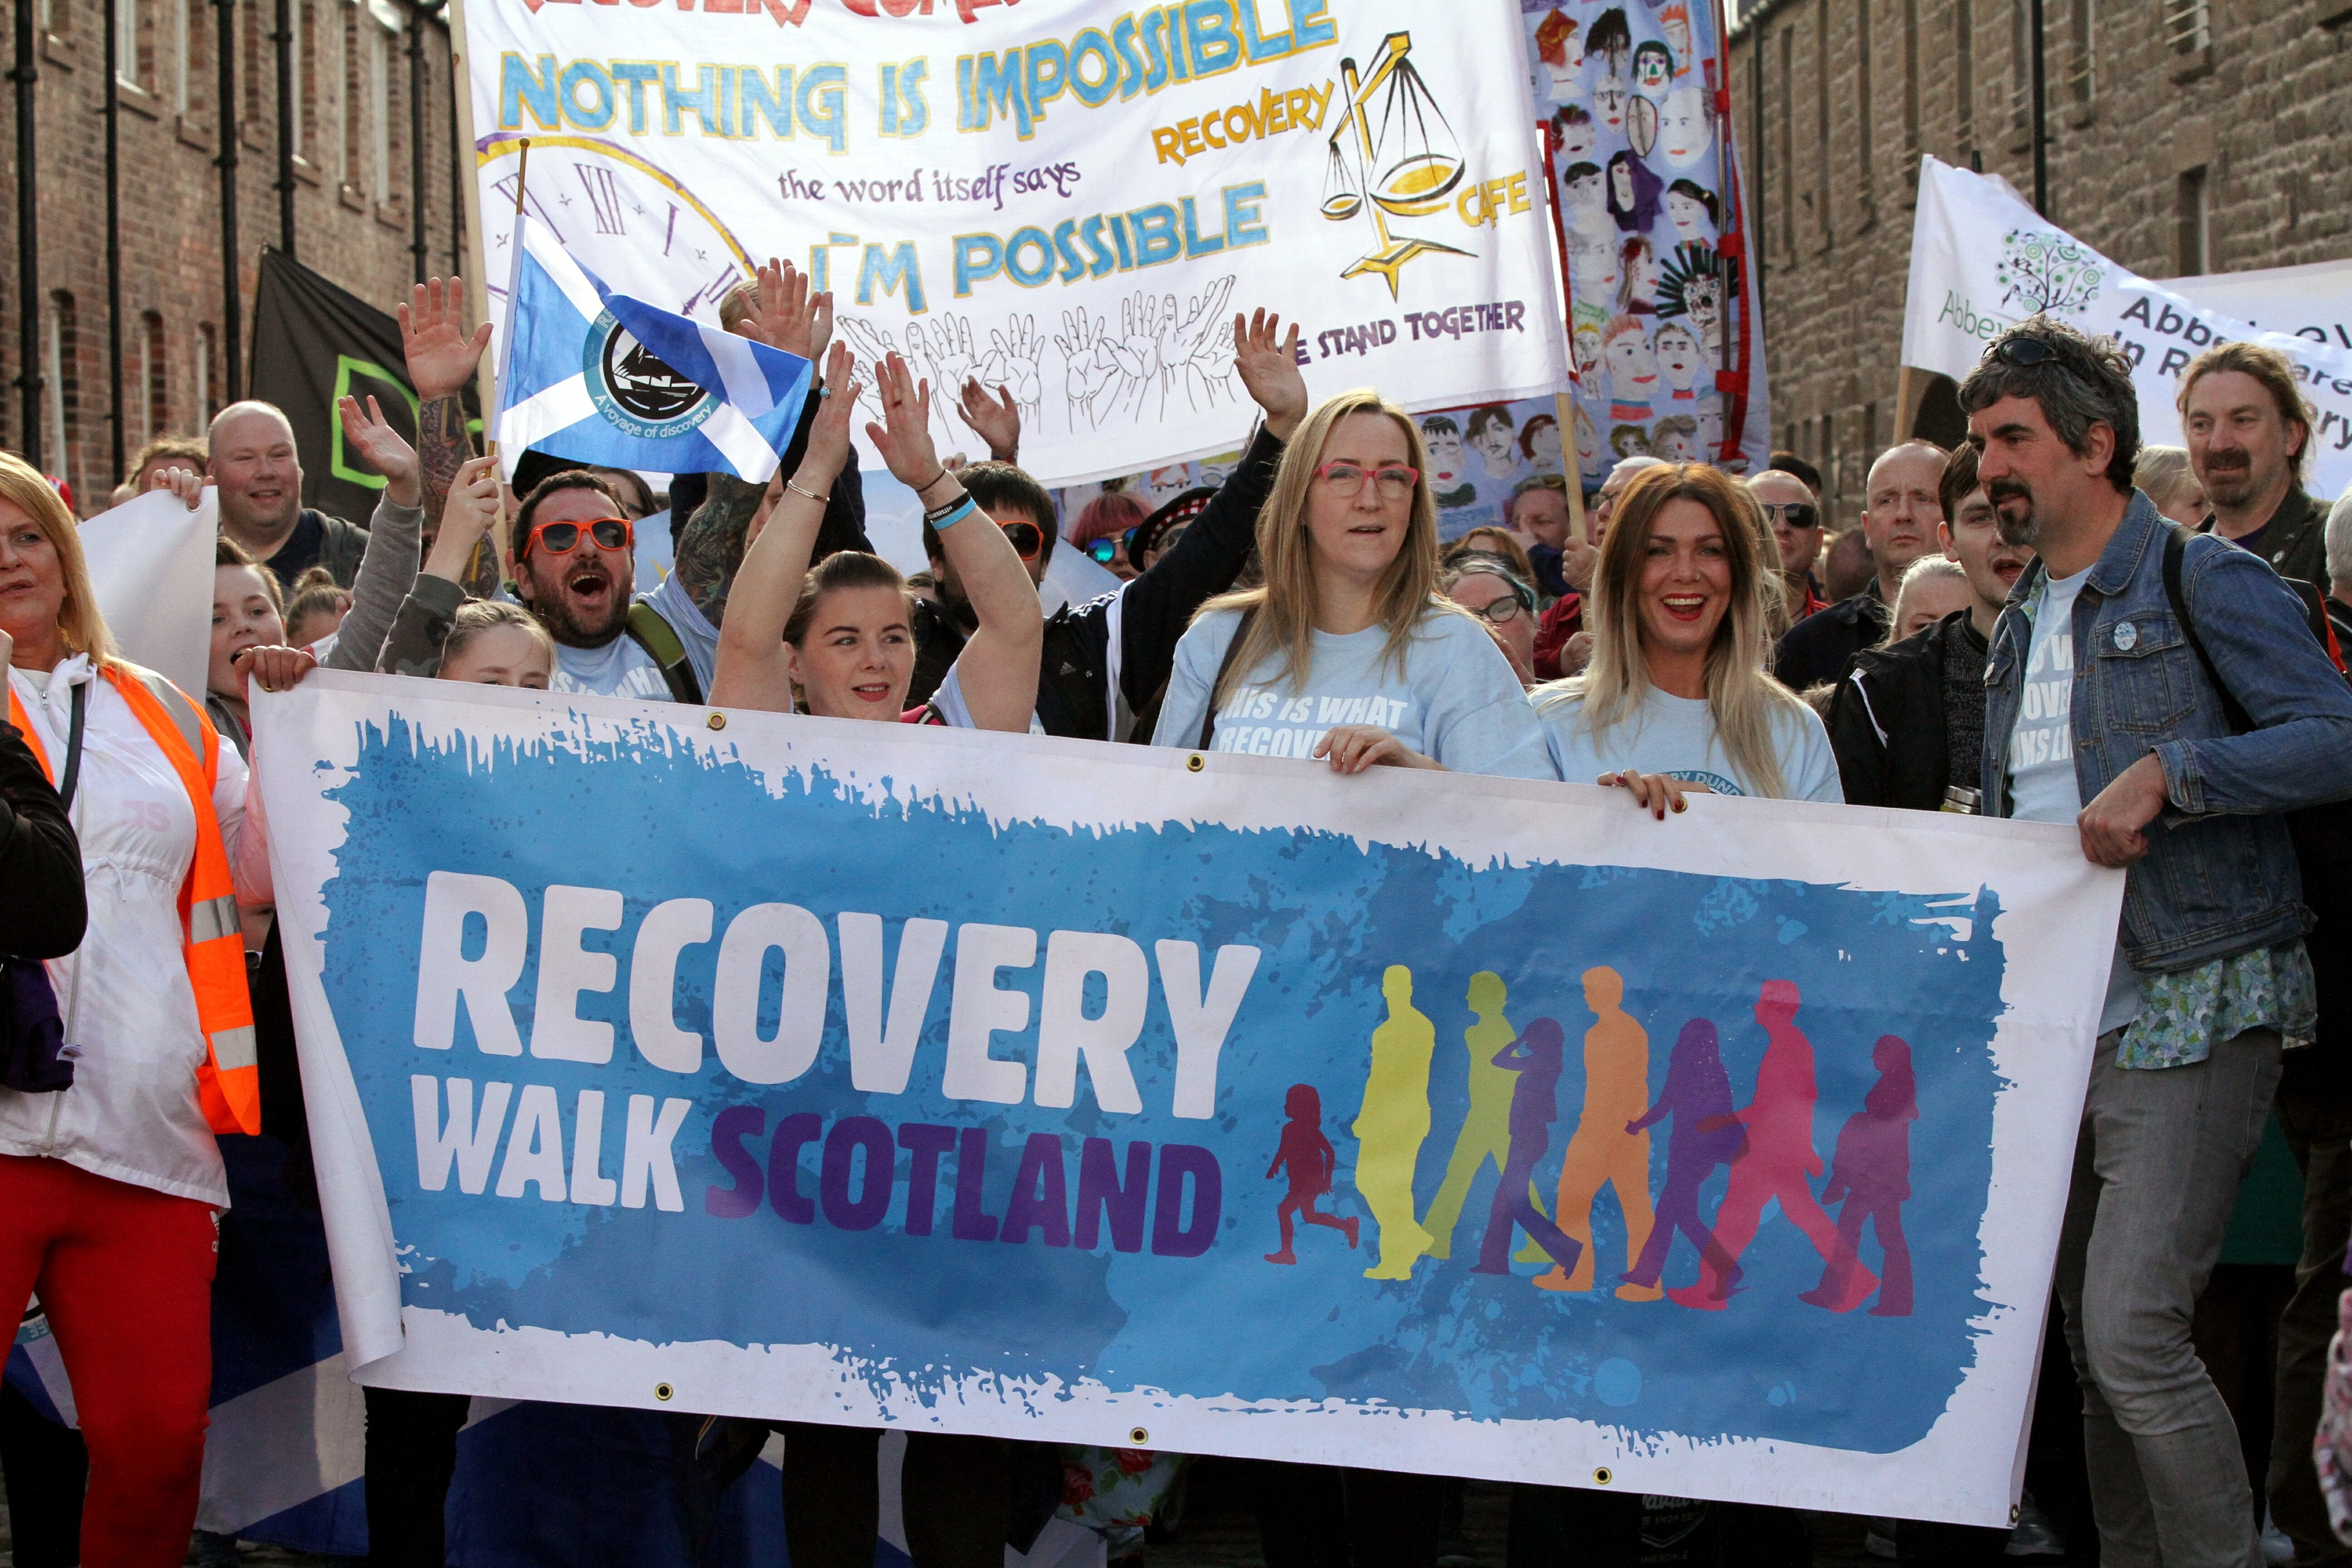 The group also hosted September's Recovery Walk